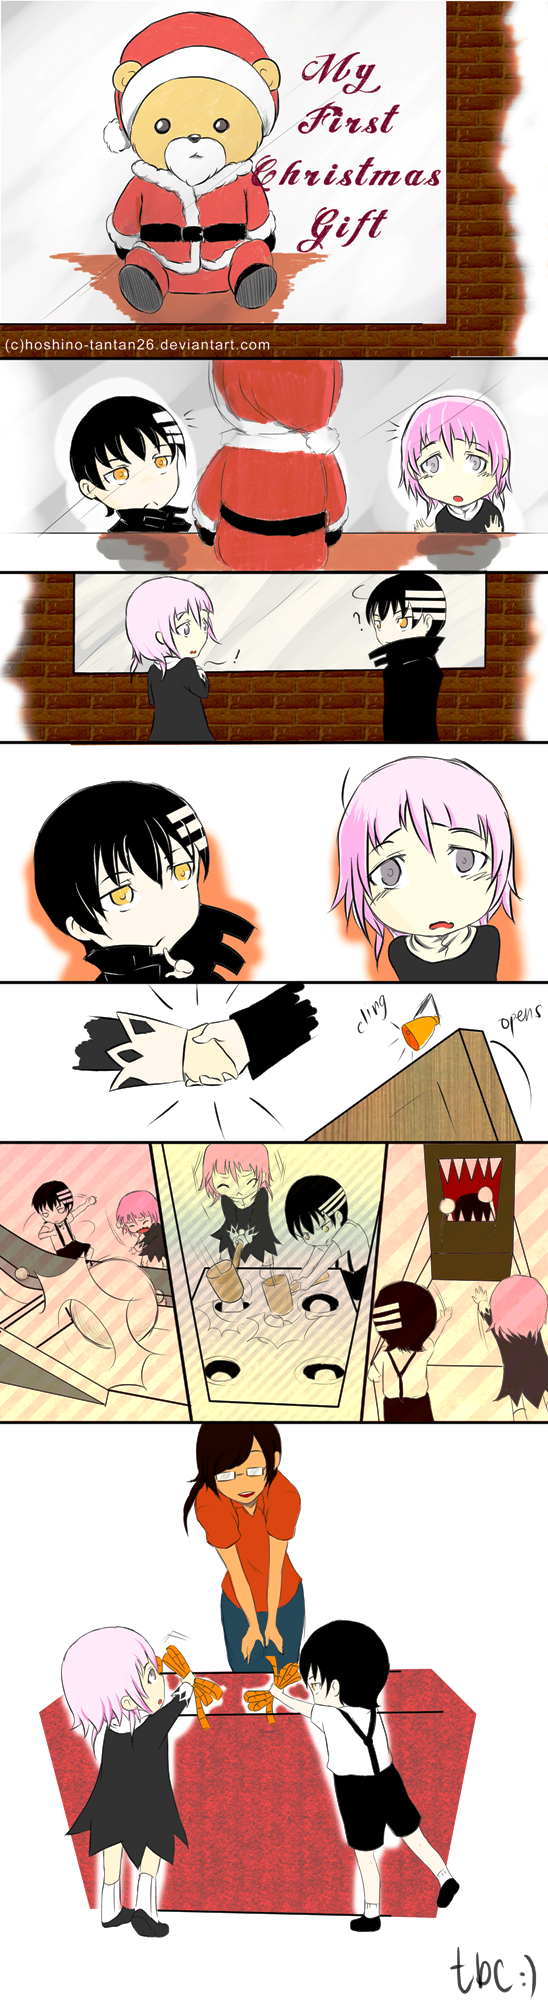 1st Xmas Gift 1(colored) by sBeatriz26